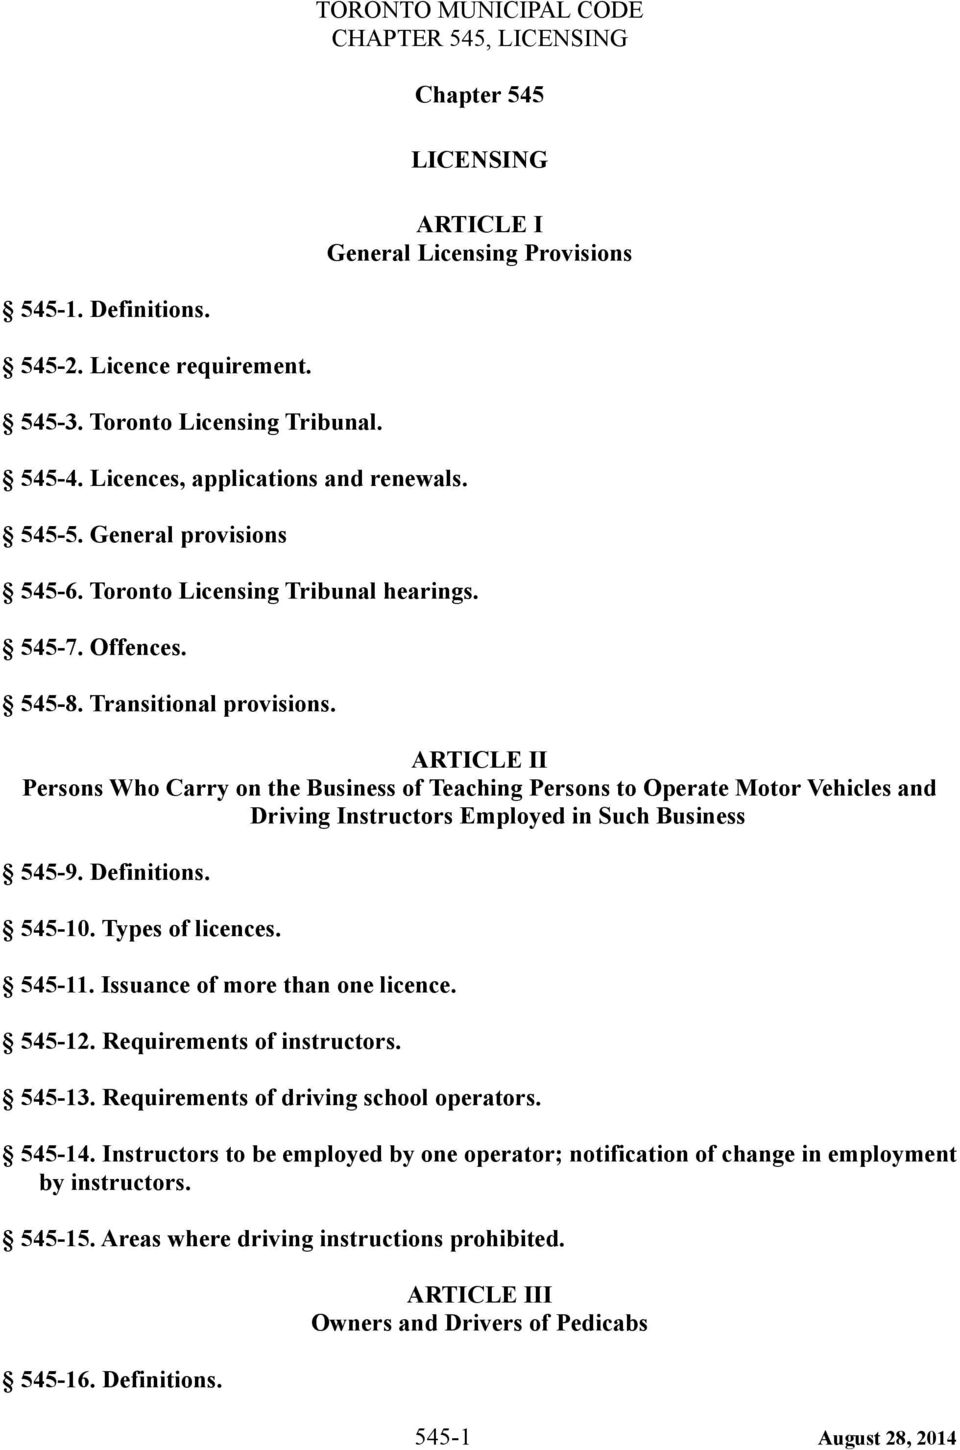 ARTICLE II Persons Who Carry on the Business of Teaching Persons to Operate Motor Vehicles and Driving Instructors Employed in Such Business 545-9. Definitions. 545-10. Types of licences. 545-11.